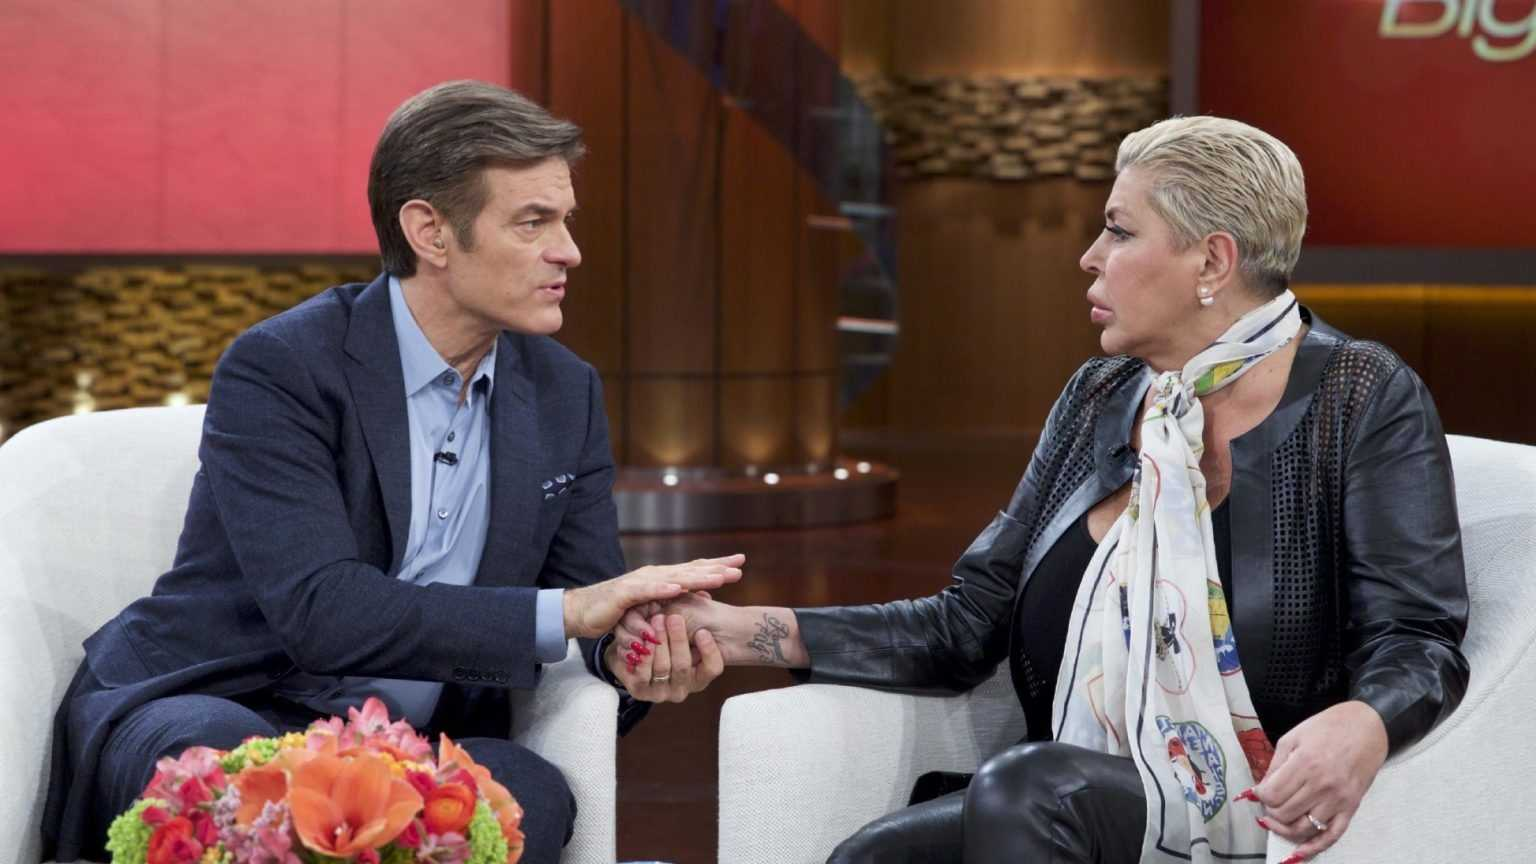 "In this image released by The Dr. Oz Show, Dr. Mehmet Oz, left, comforts Angela ""Big Ang"" Raiola during a taping of ""The Dr. Oz Show,"" in New York. The reality TV star says she veers between hope and depression as she fights stage-four brain and lung cancer. In a tearful interview airing Tuesday, Feb. 16, 2016, on ""The Dr. Oz Show,"" Raiola of ""Mob Wives"" fame said her family is her support and her reason to keep going."